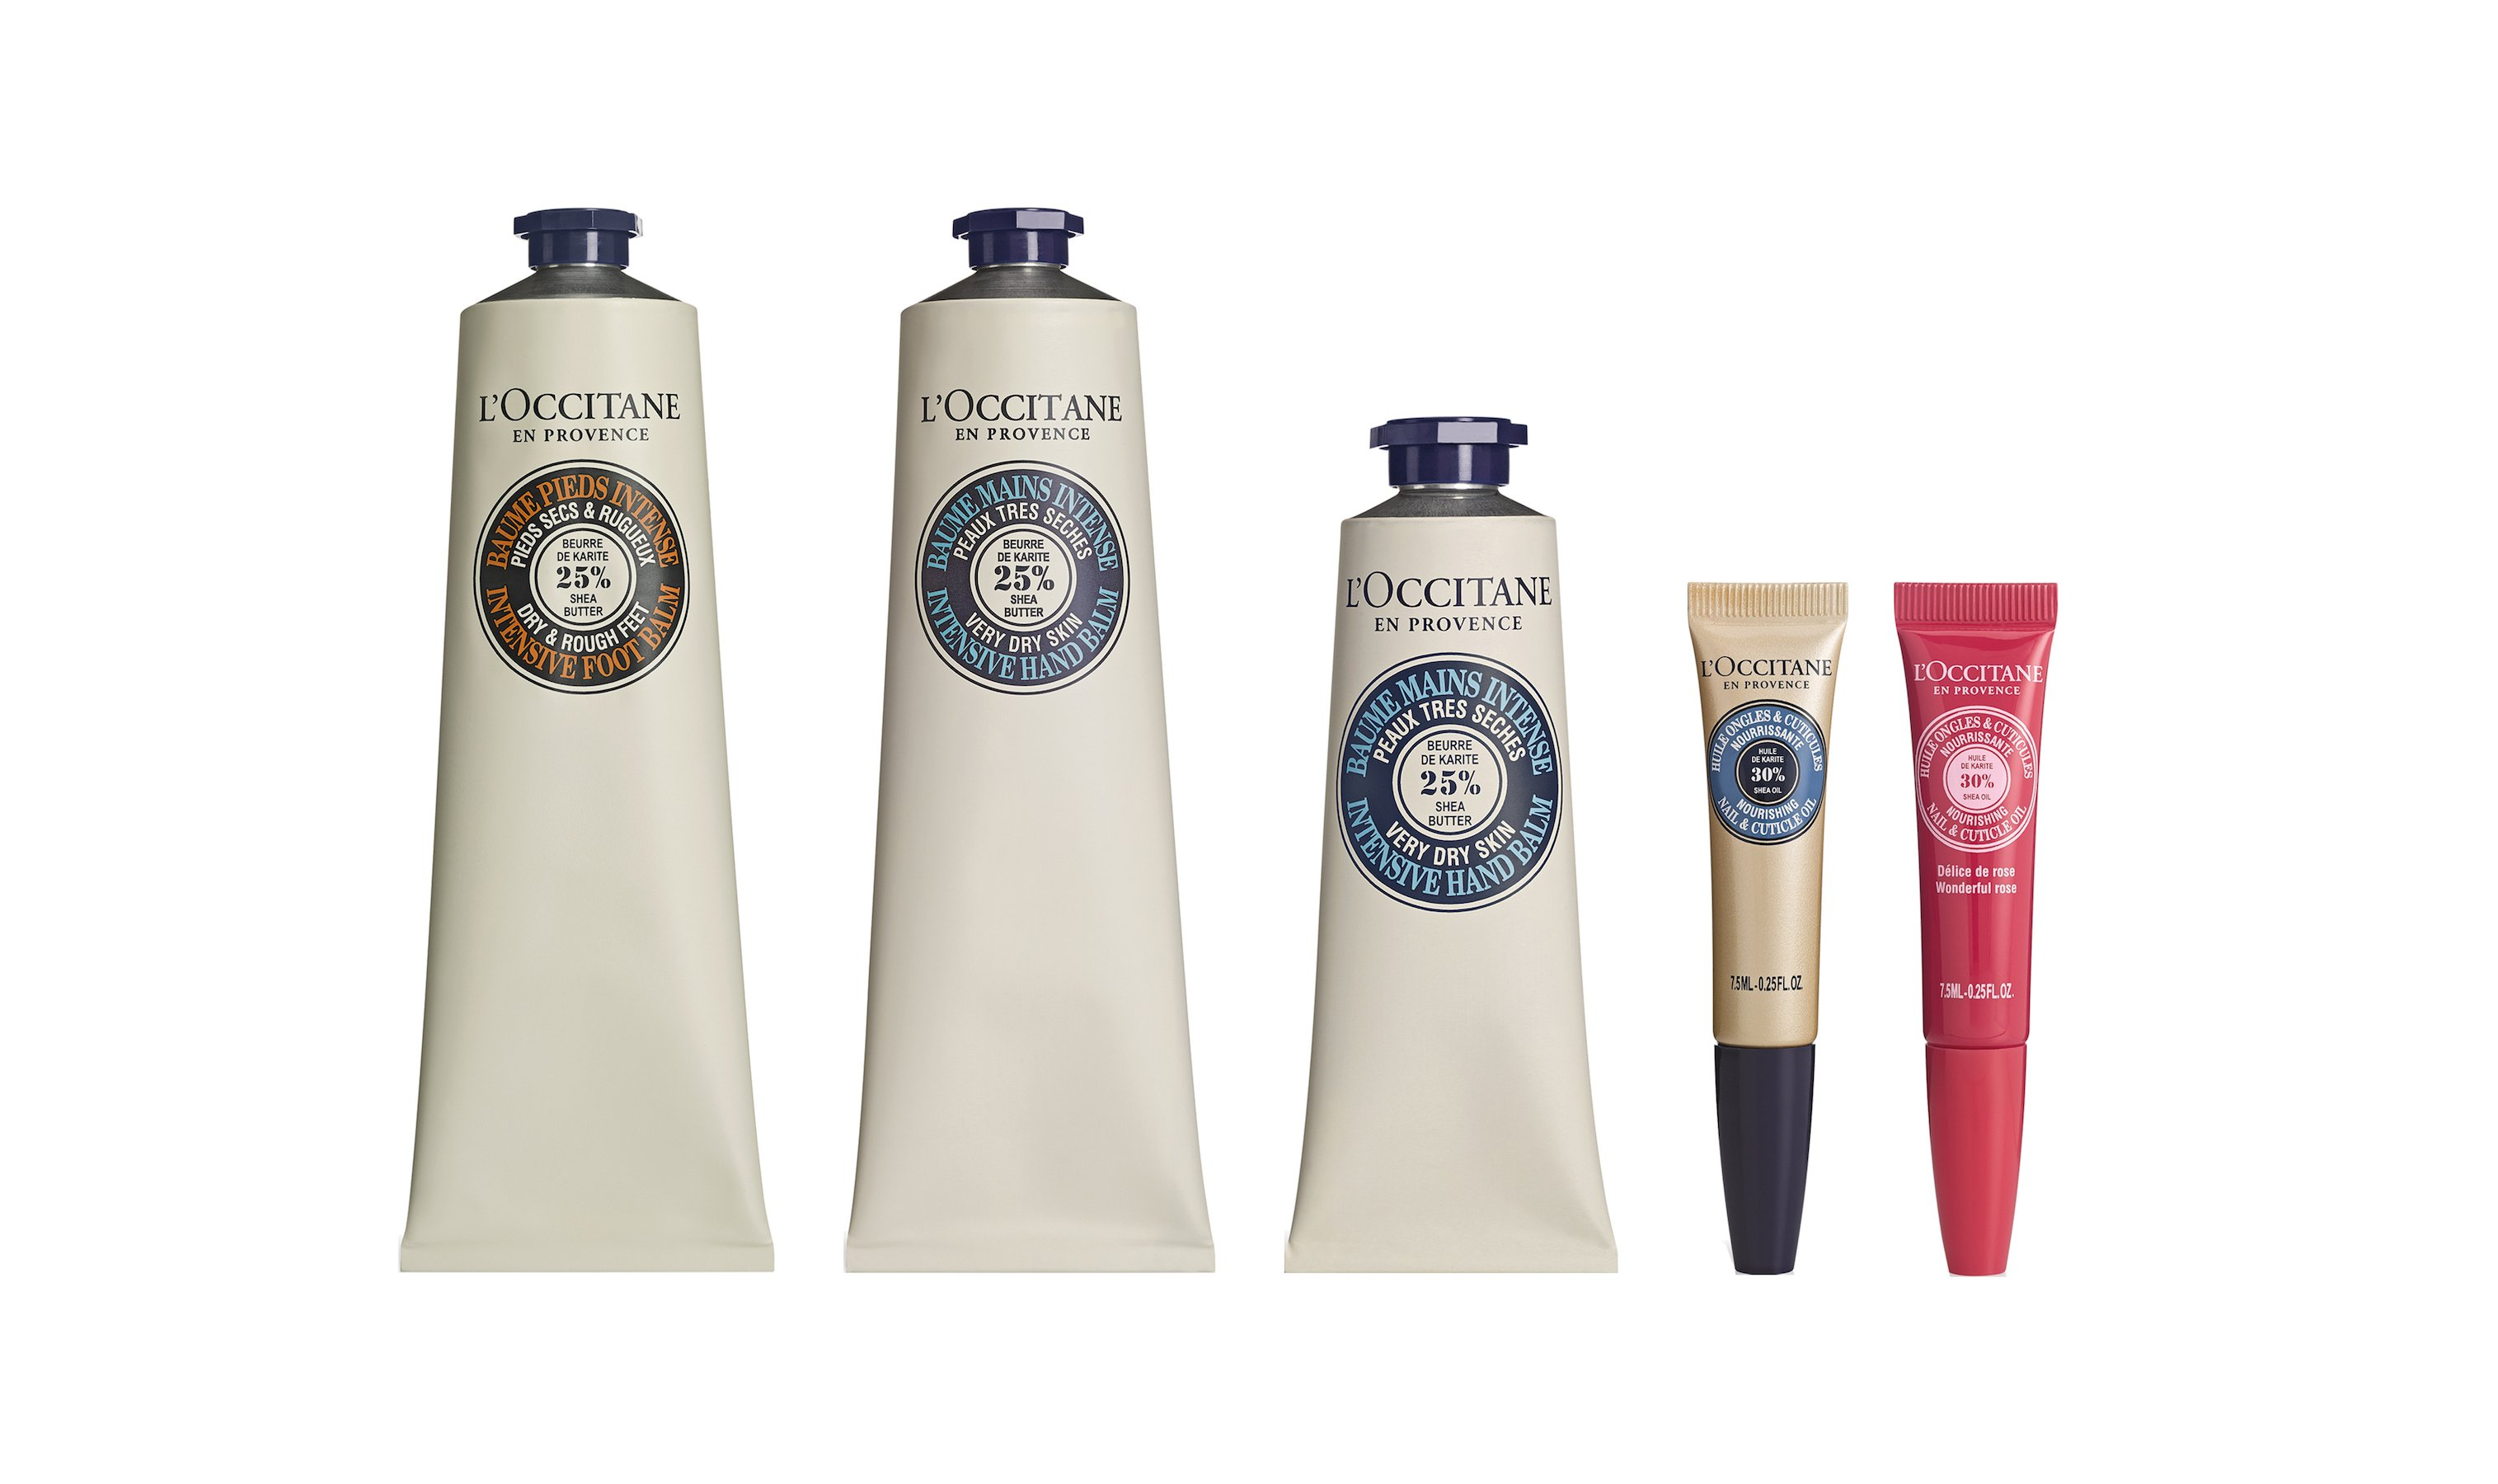 New Additions To The Intensive Shea Butter Range From L'Occitane